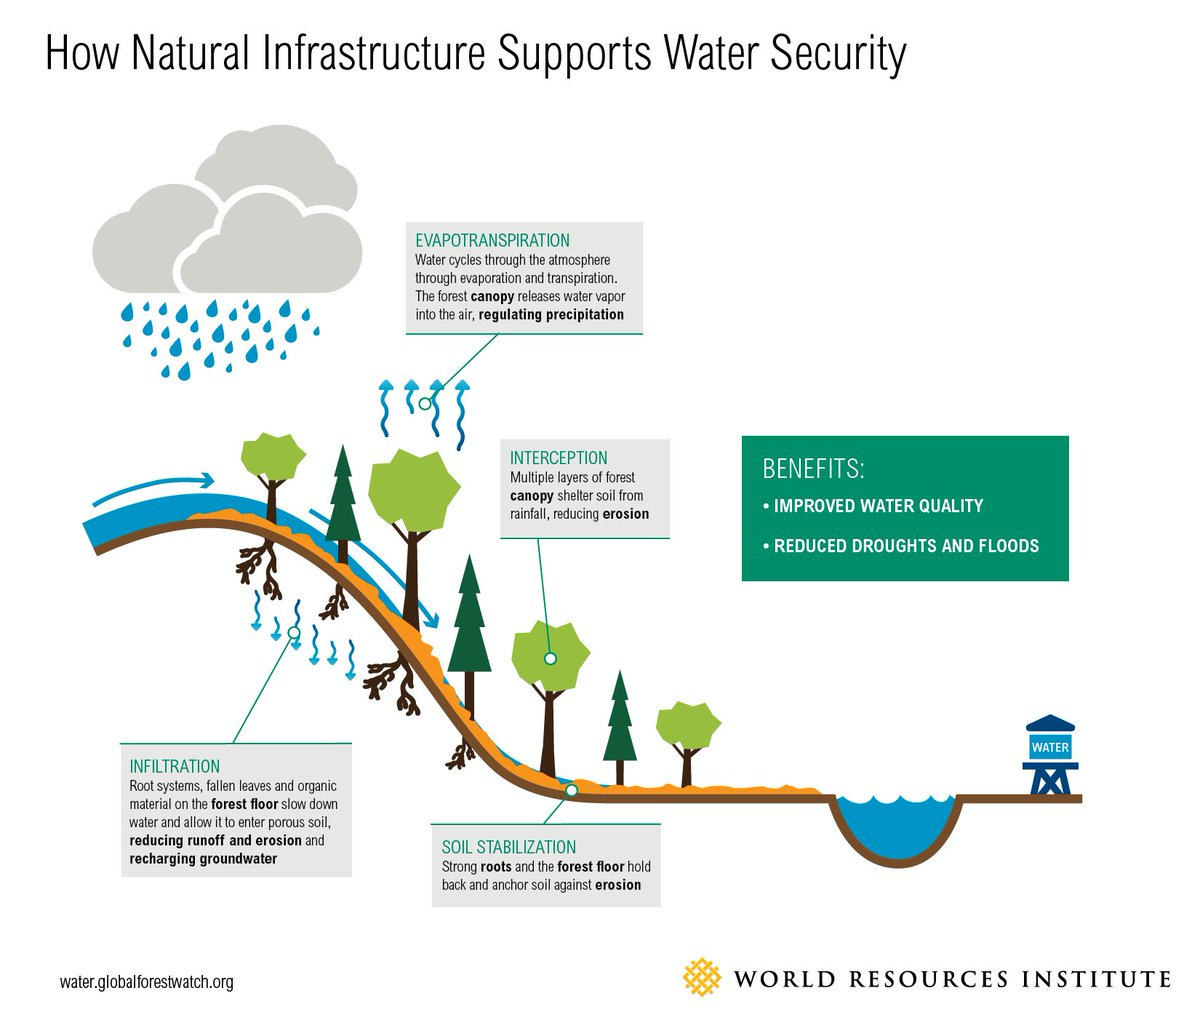 #WaterDay2017 - a day to remember that #water is inextricably linked to #energy, #food, #forests, #security and #climate<br>http://pic.twitter.com/mtTZFqoObf